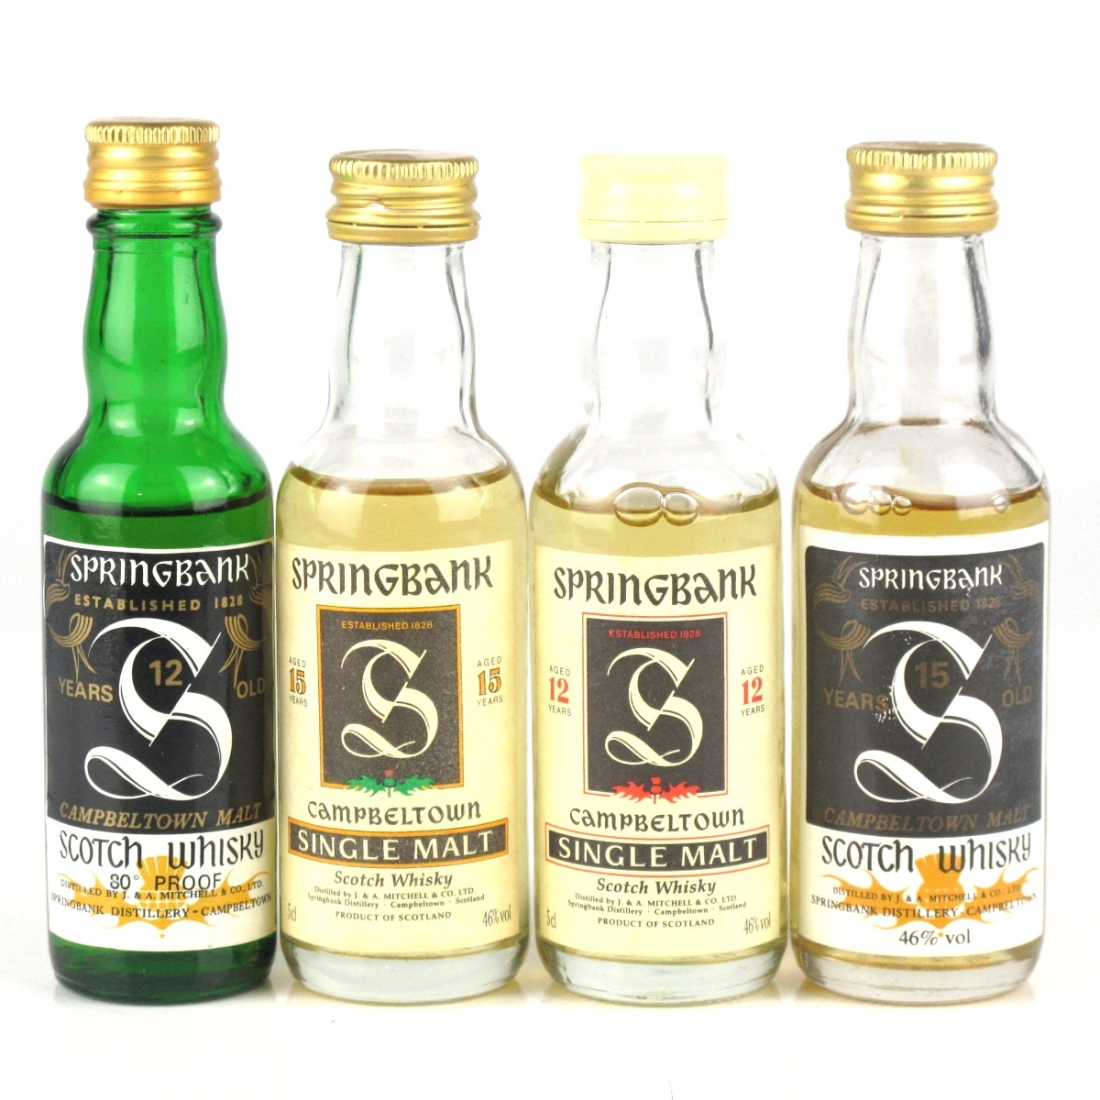 Springbank Miniature Selection 4 x 5cl